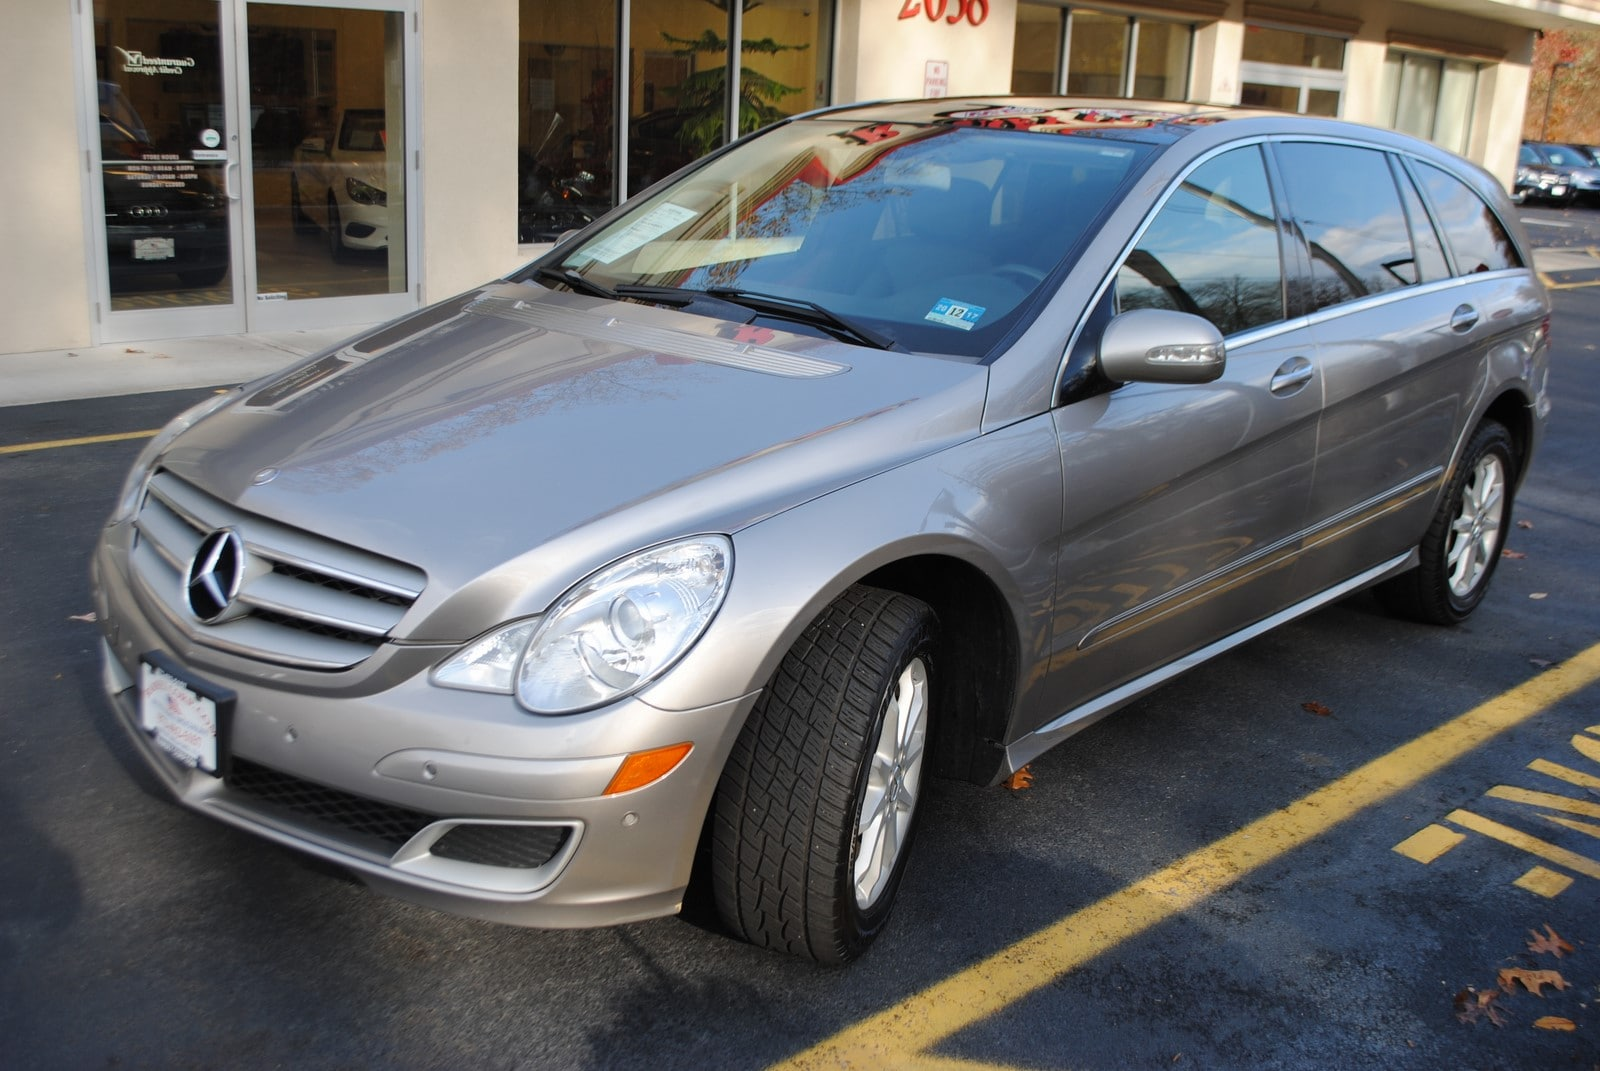 used 2007 mercedes benz r class for sale west milford nj rh ramseycorp com 2007 R350 4MATIC 2007 Mercedes R350 MPG